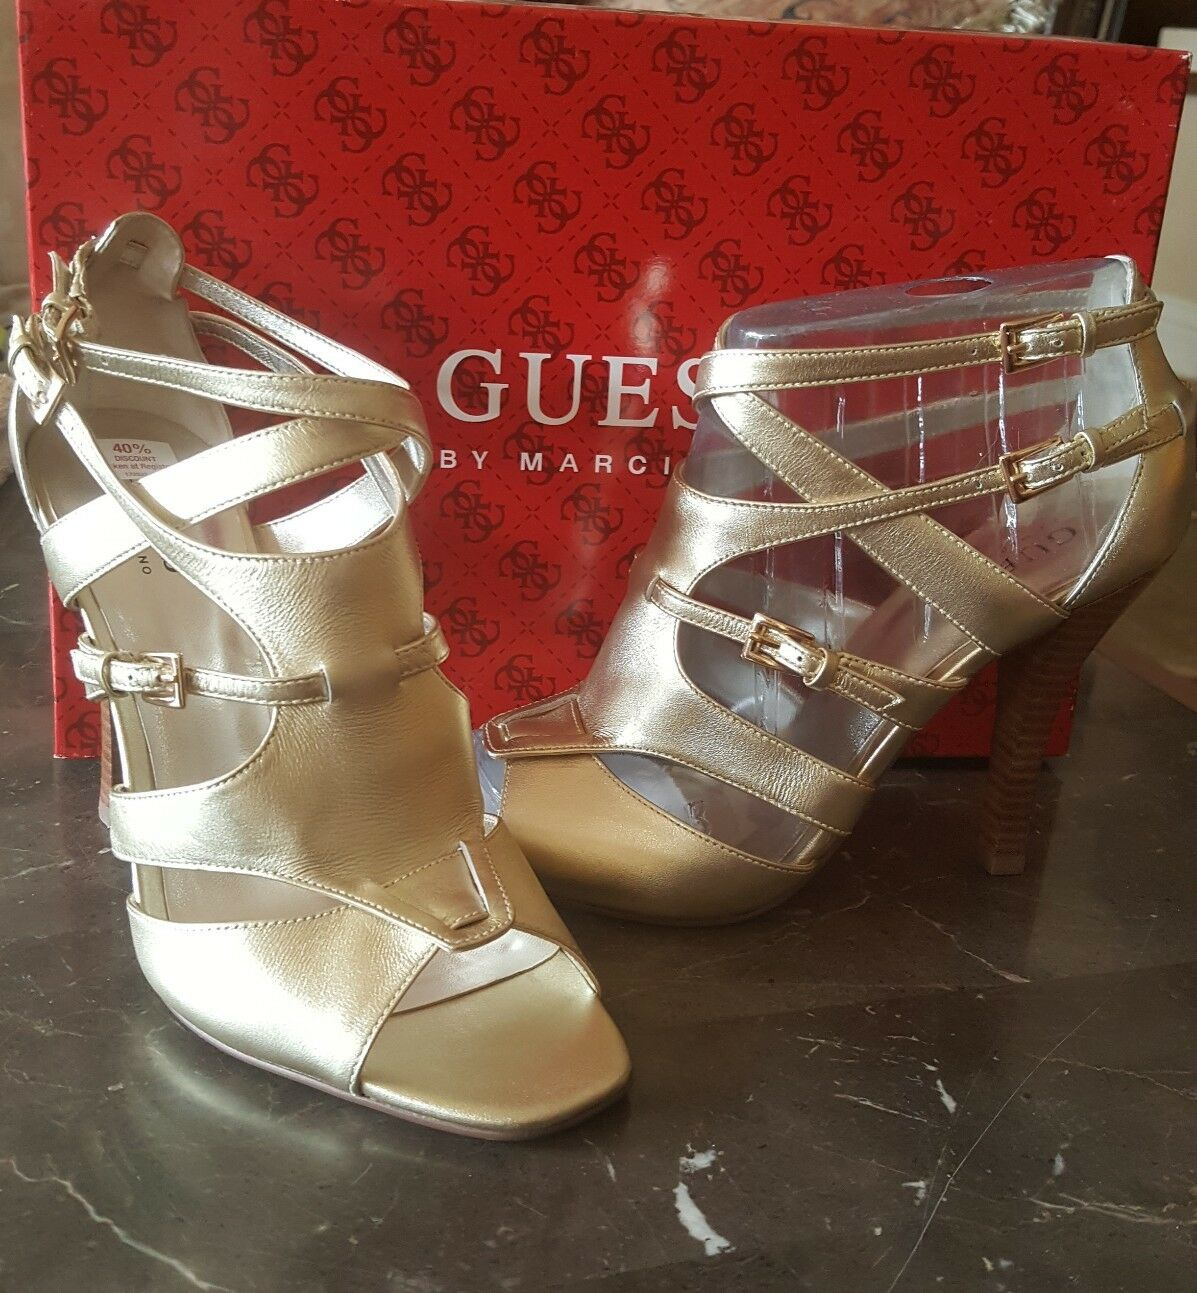 Guess Metallic Gold Größe Strappy Heels Größe Gold 7. 5 New in Box 48ca15